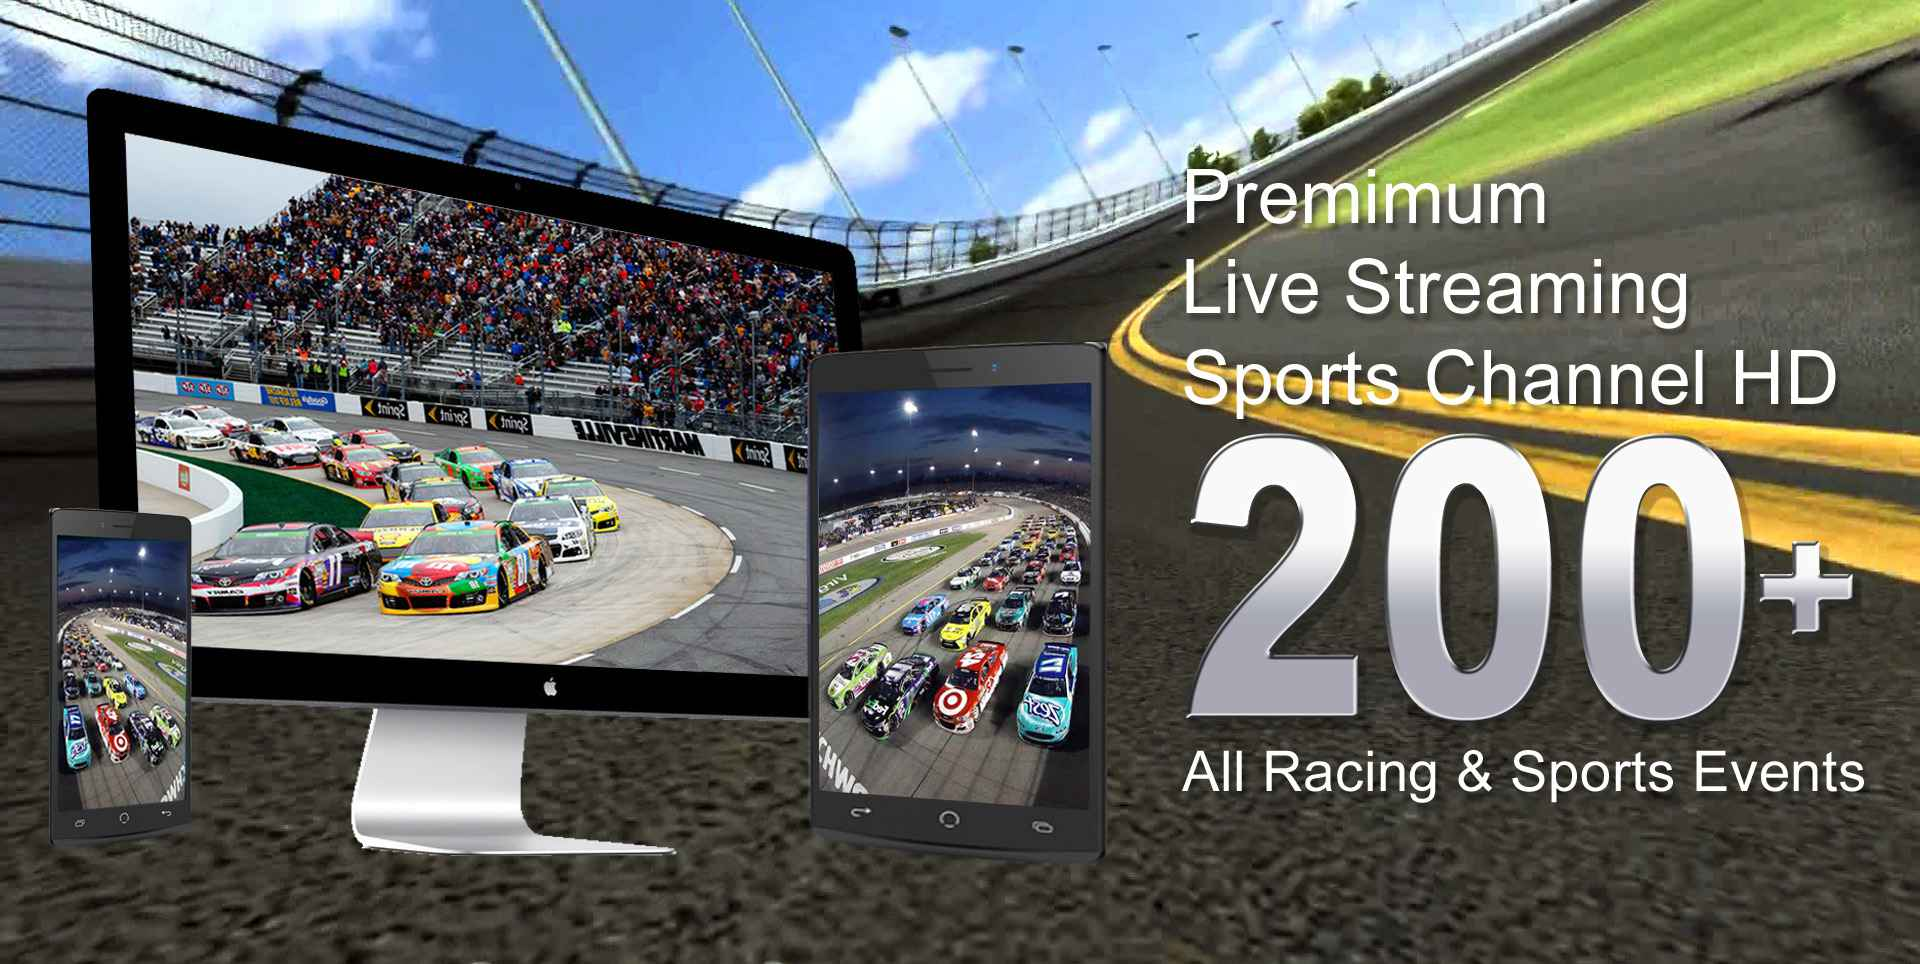 Nascar Sprint Cup New Hampshire 301 Live